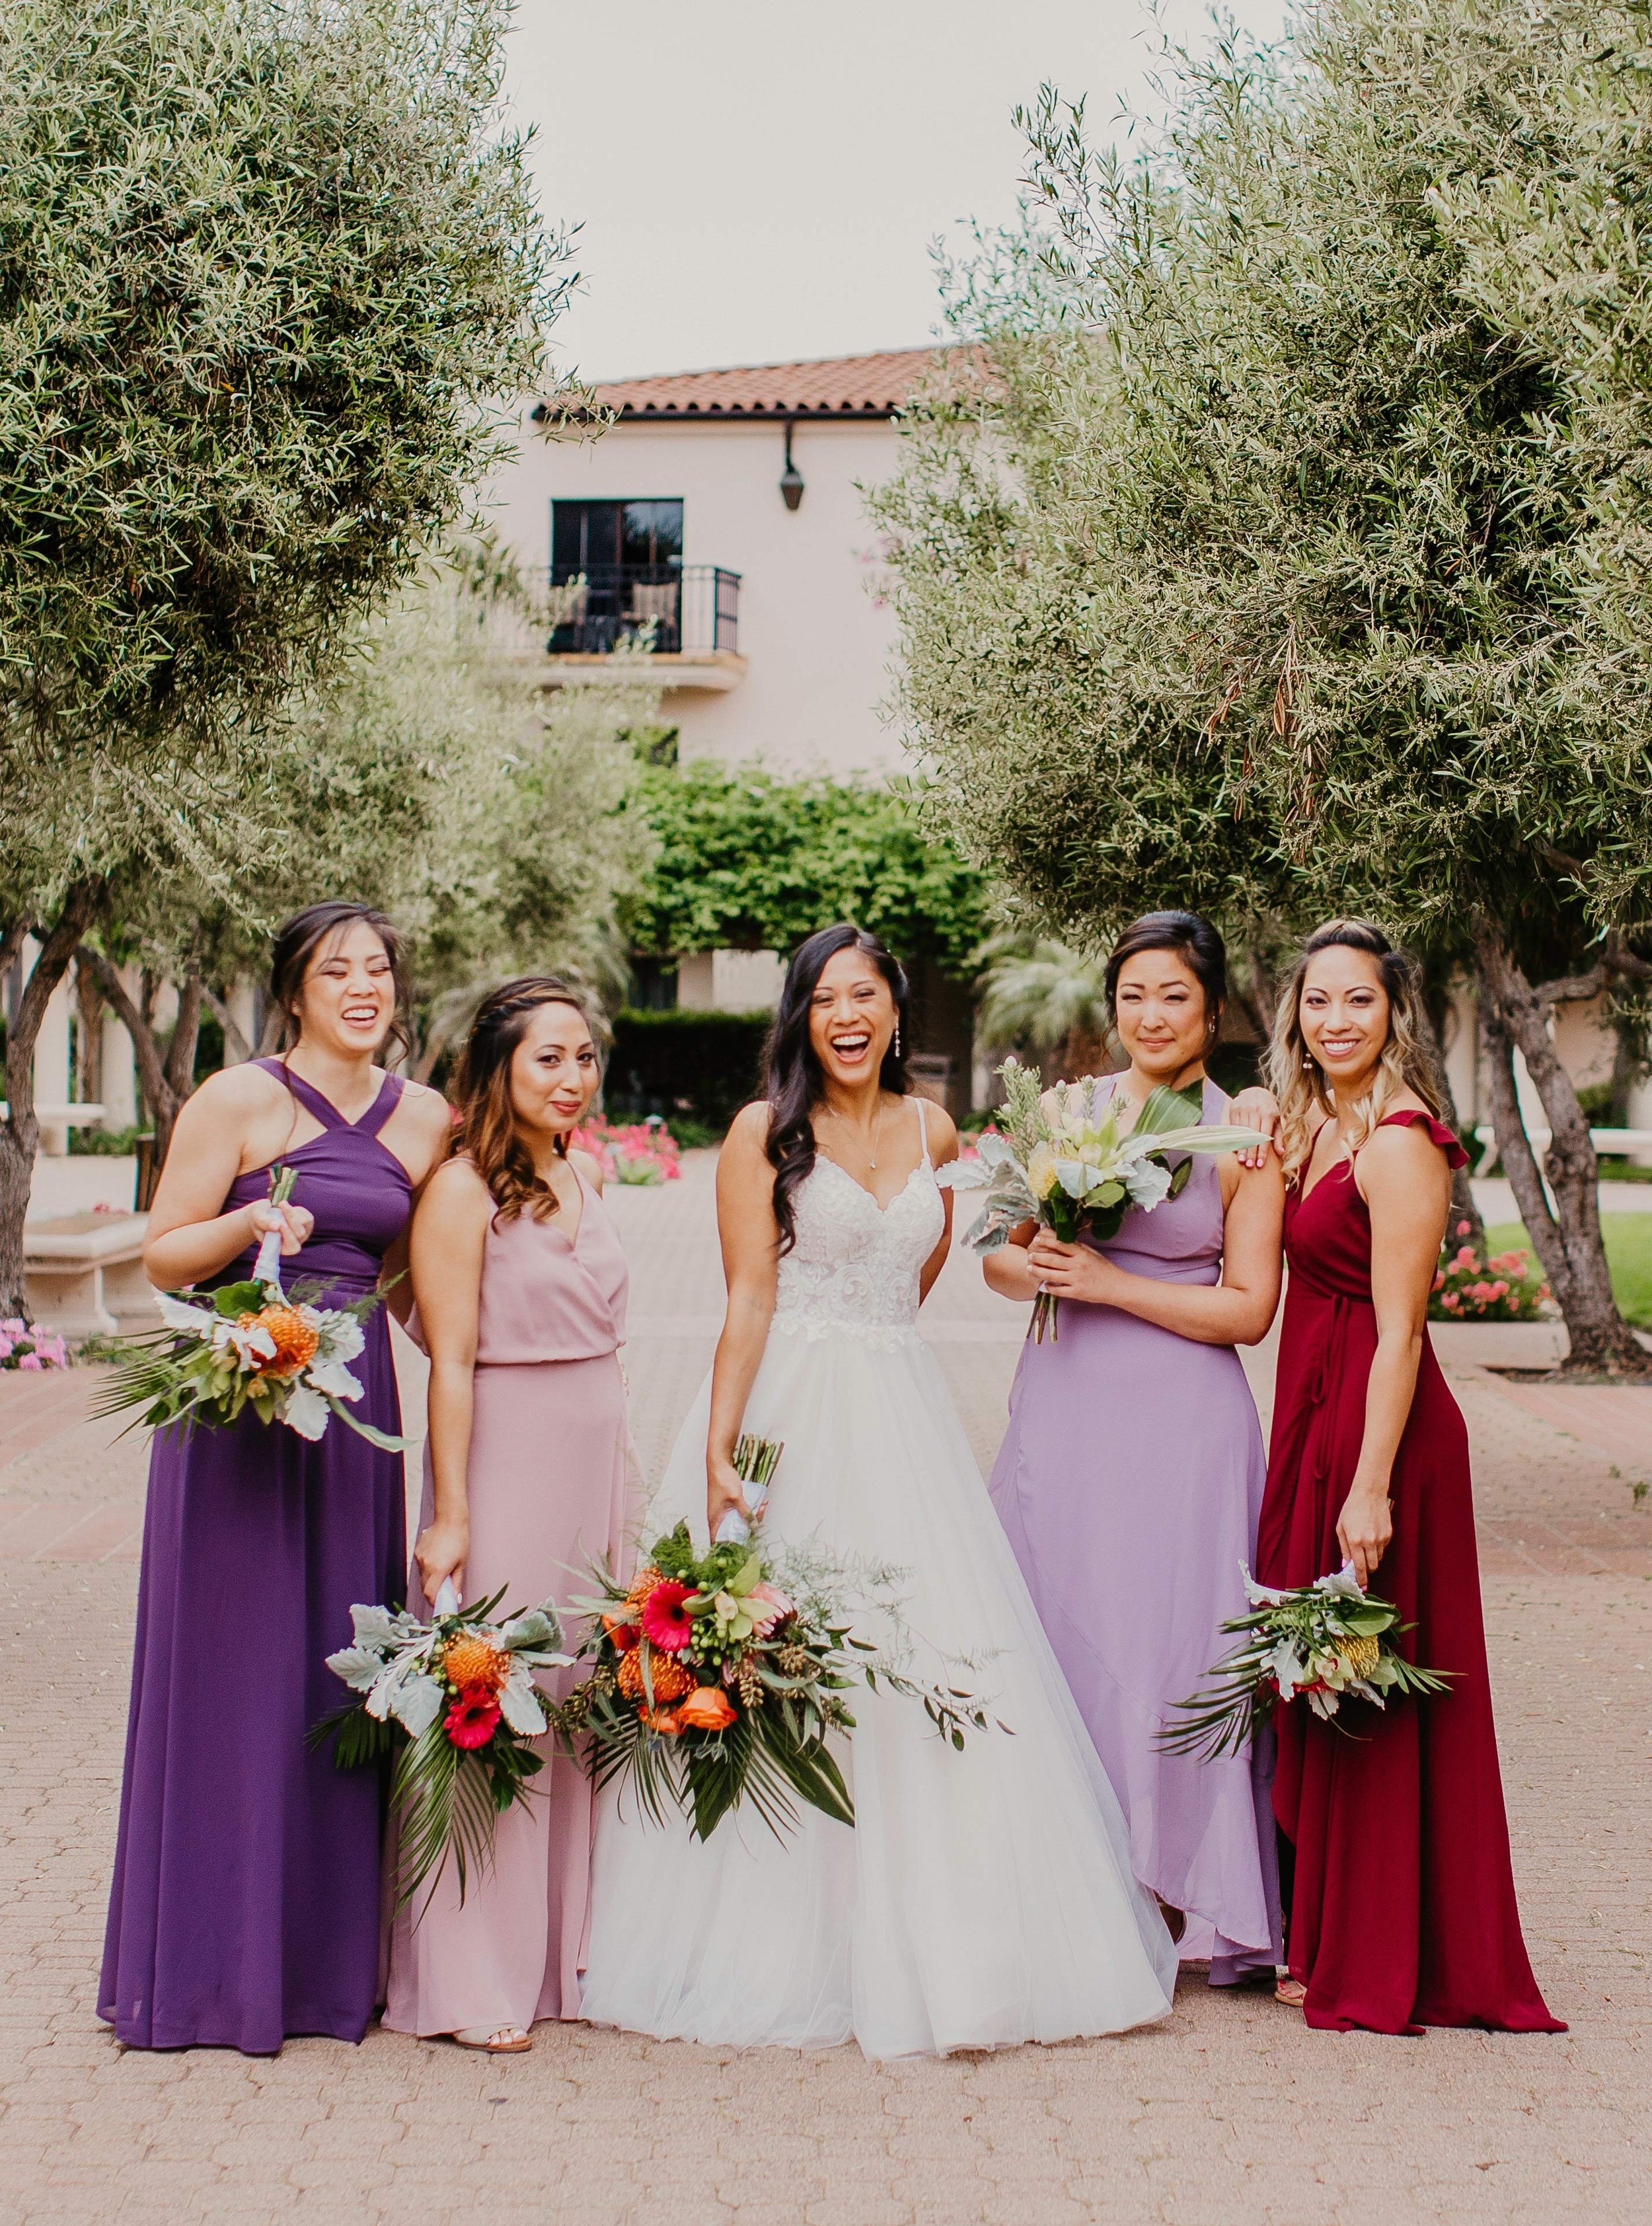 www.santabarbarawedding.com | Candice Marie Photography | Hilton Santa Barbara Beachfront Resort | Once in a Lifetime Weddings | Alpha Floral | Absolutely Fabulous Glamour | Bride and Bridesmaids